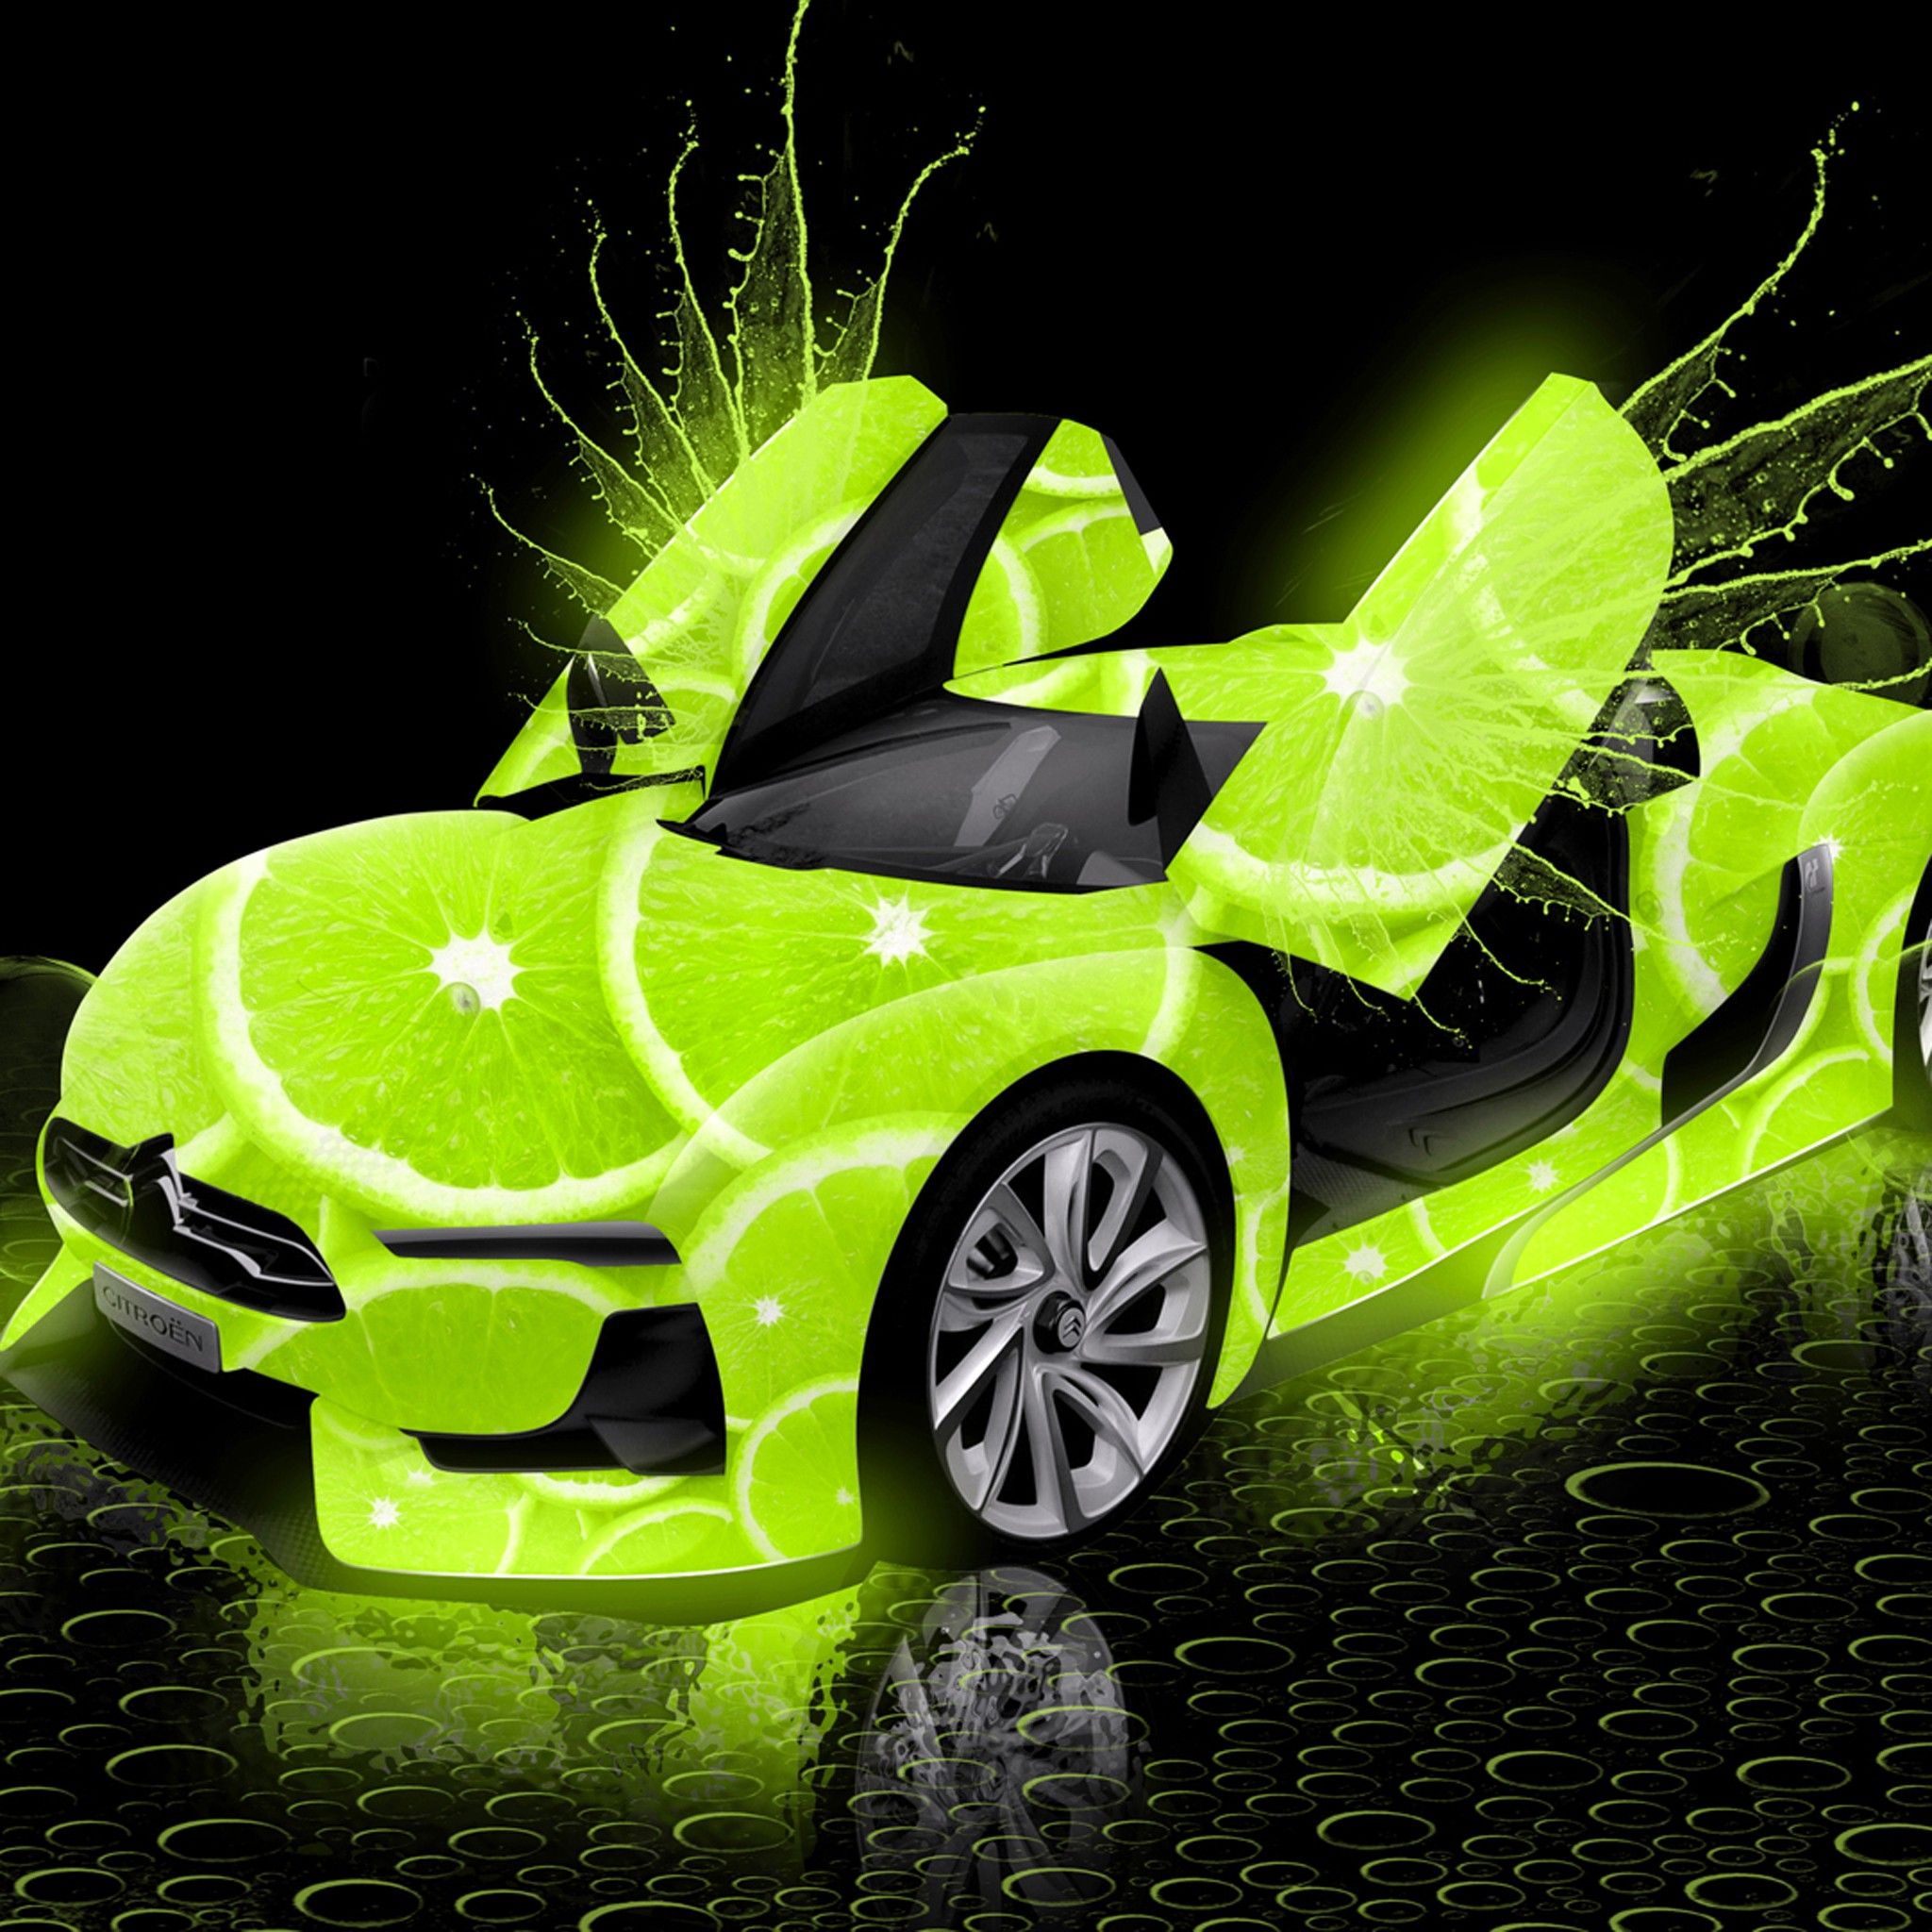 Neon Colored Cars Cars Citroen Lime Photoshop Green Neon 2048x2048 Ipad Wallpapers Neon Car Car Neon